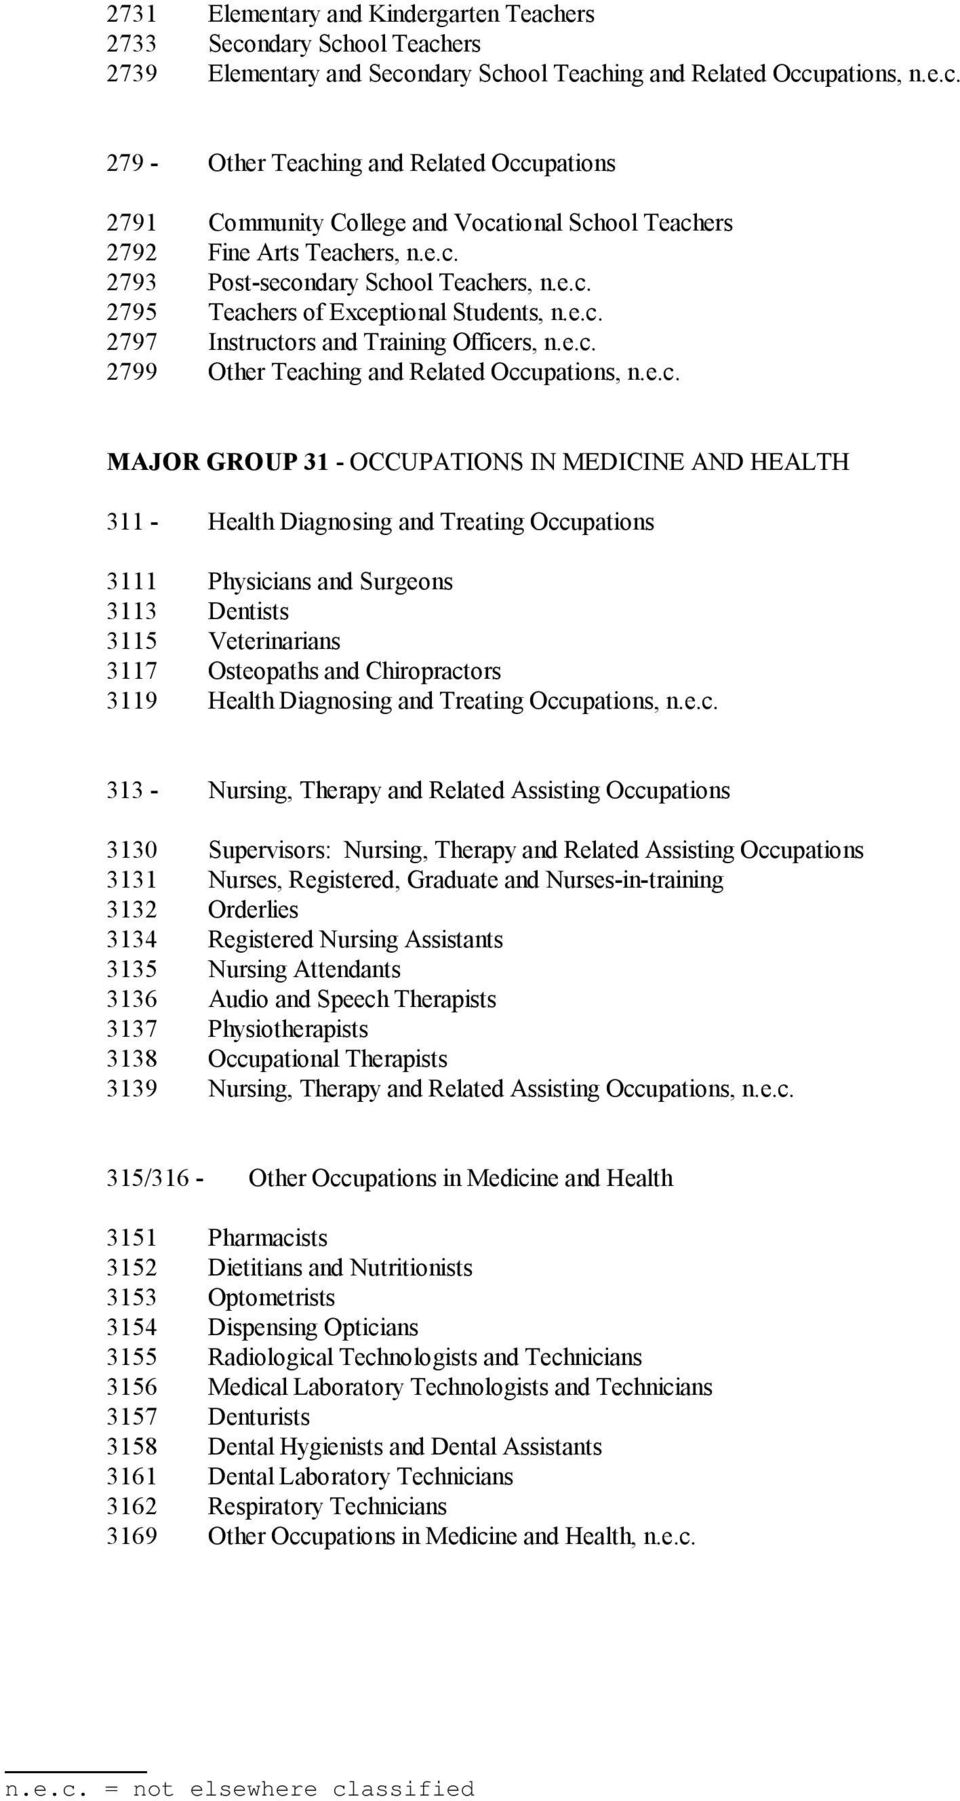 GROUP 31 - OCCUPATIONS IN MEDICINE AND HEALTH 311 - Health Diagnosing and Treating Occupations 3111 Physicians and Surgeons 3113 Dentists 3115 Veterinarians 3117 Osteopaths and Chiropractors 3119